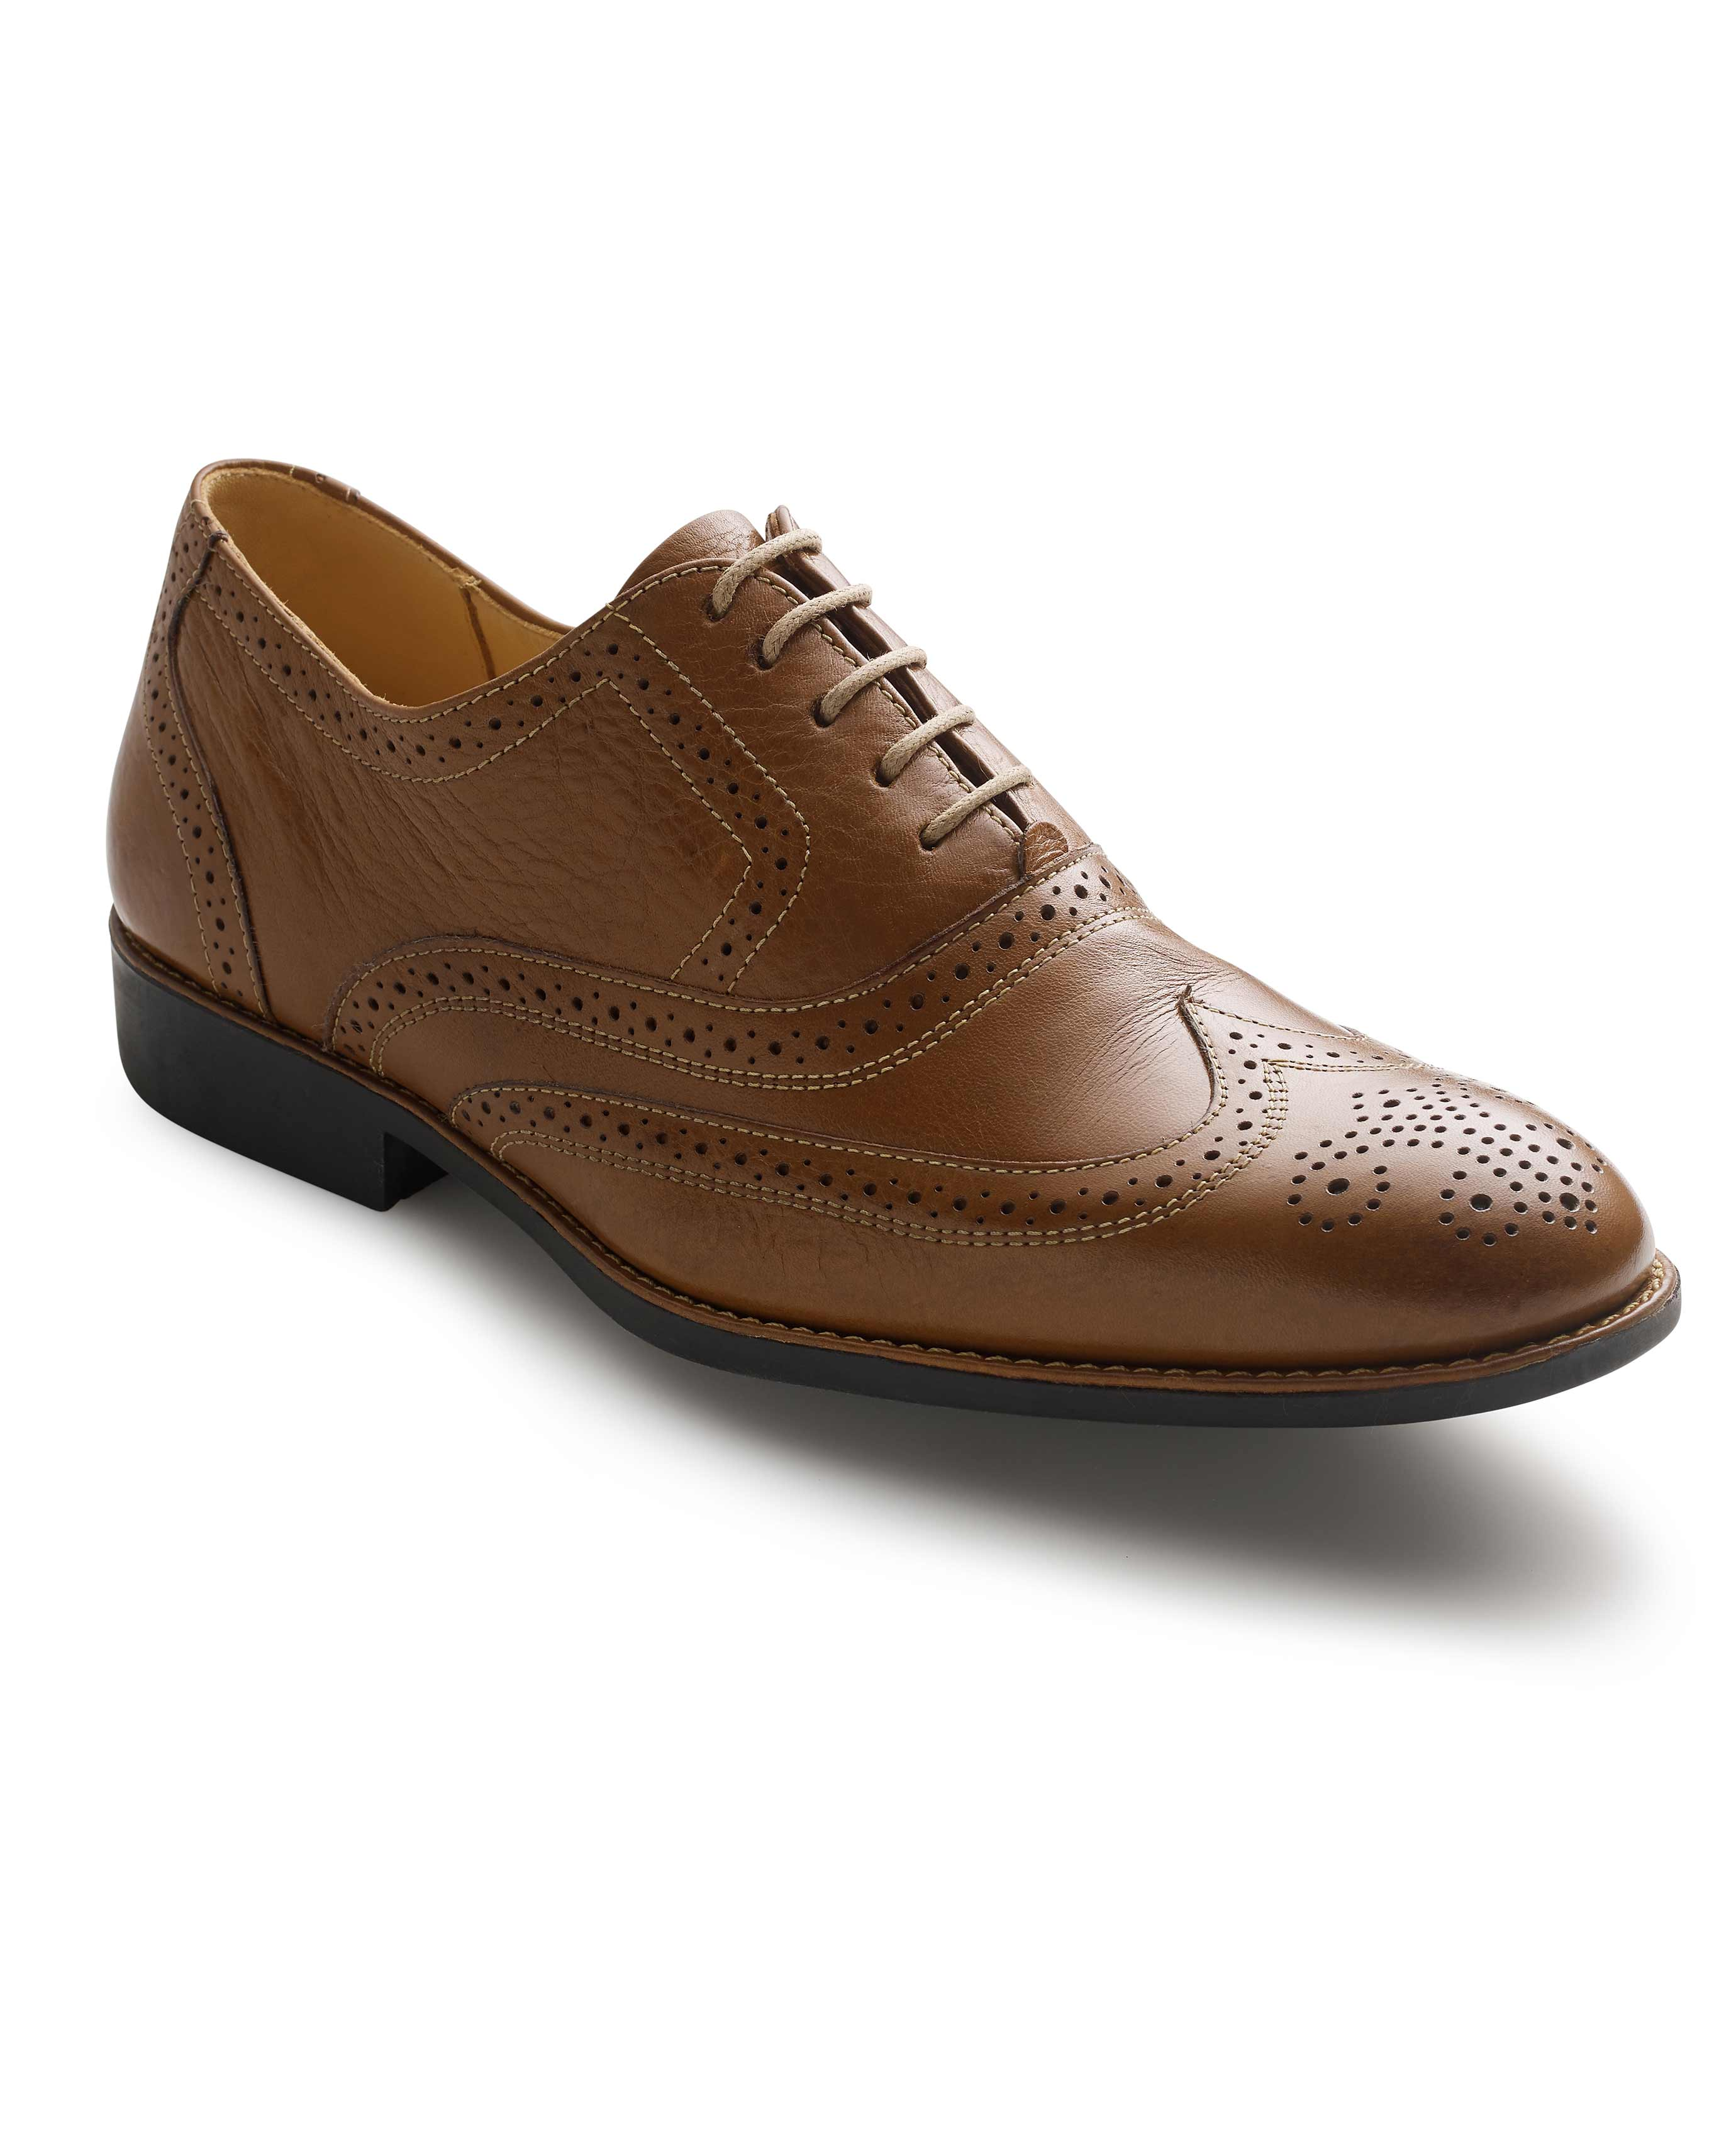 6ab869b4966 Men's tan leather full brogues | Savile Row Company